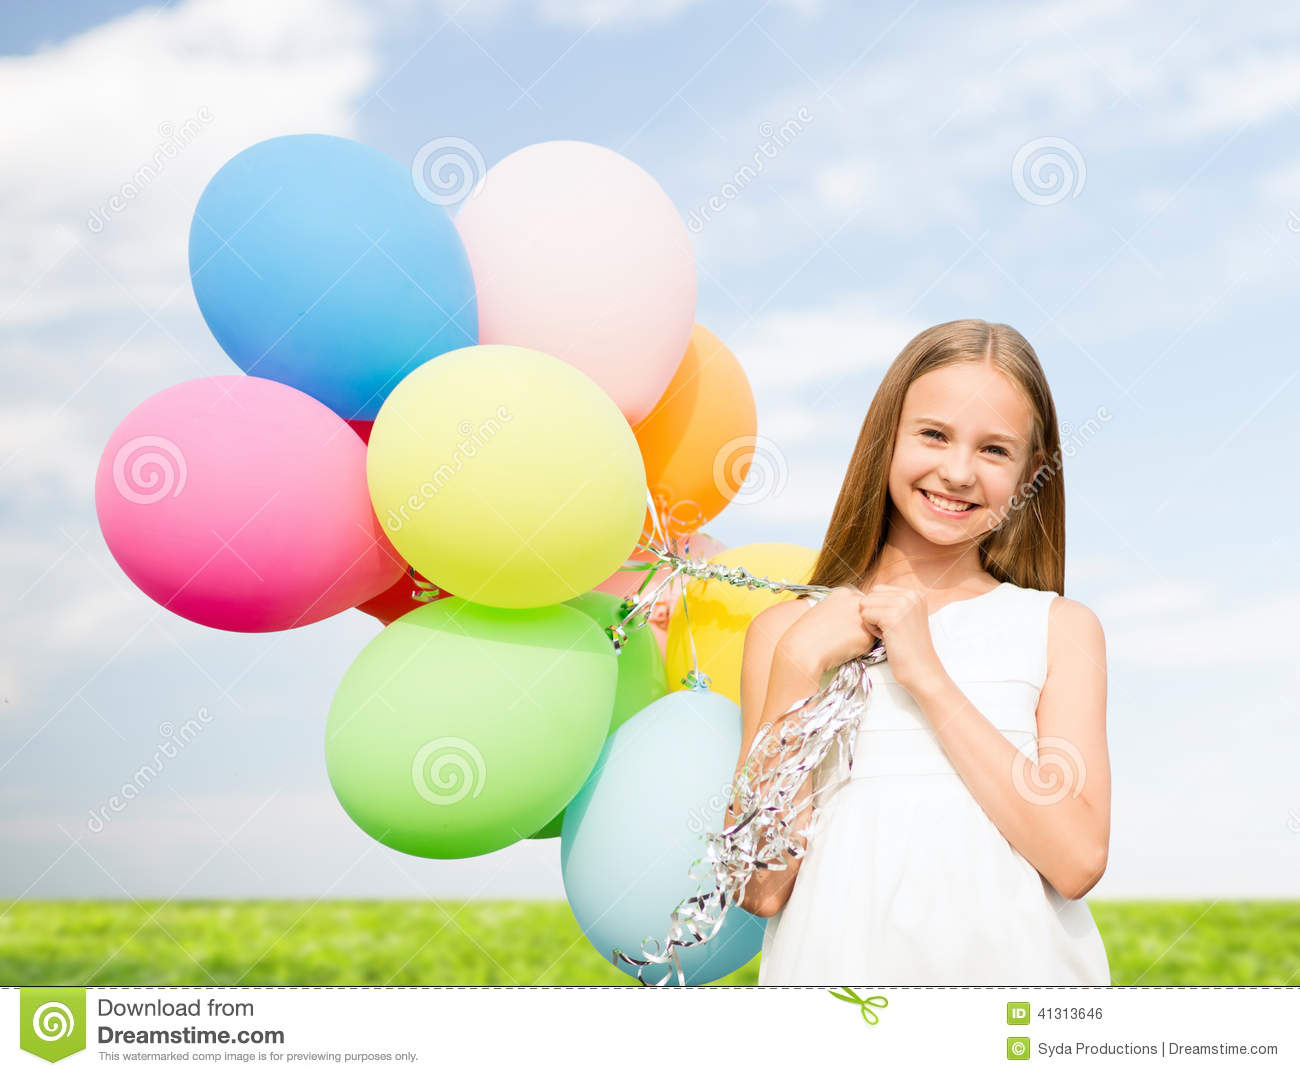 a428bf1e1 Happy Girl With Colorful Balloons Stock Photo - Image of adorable ...